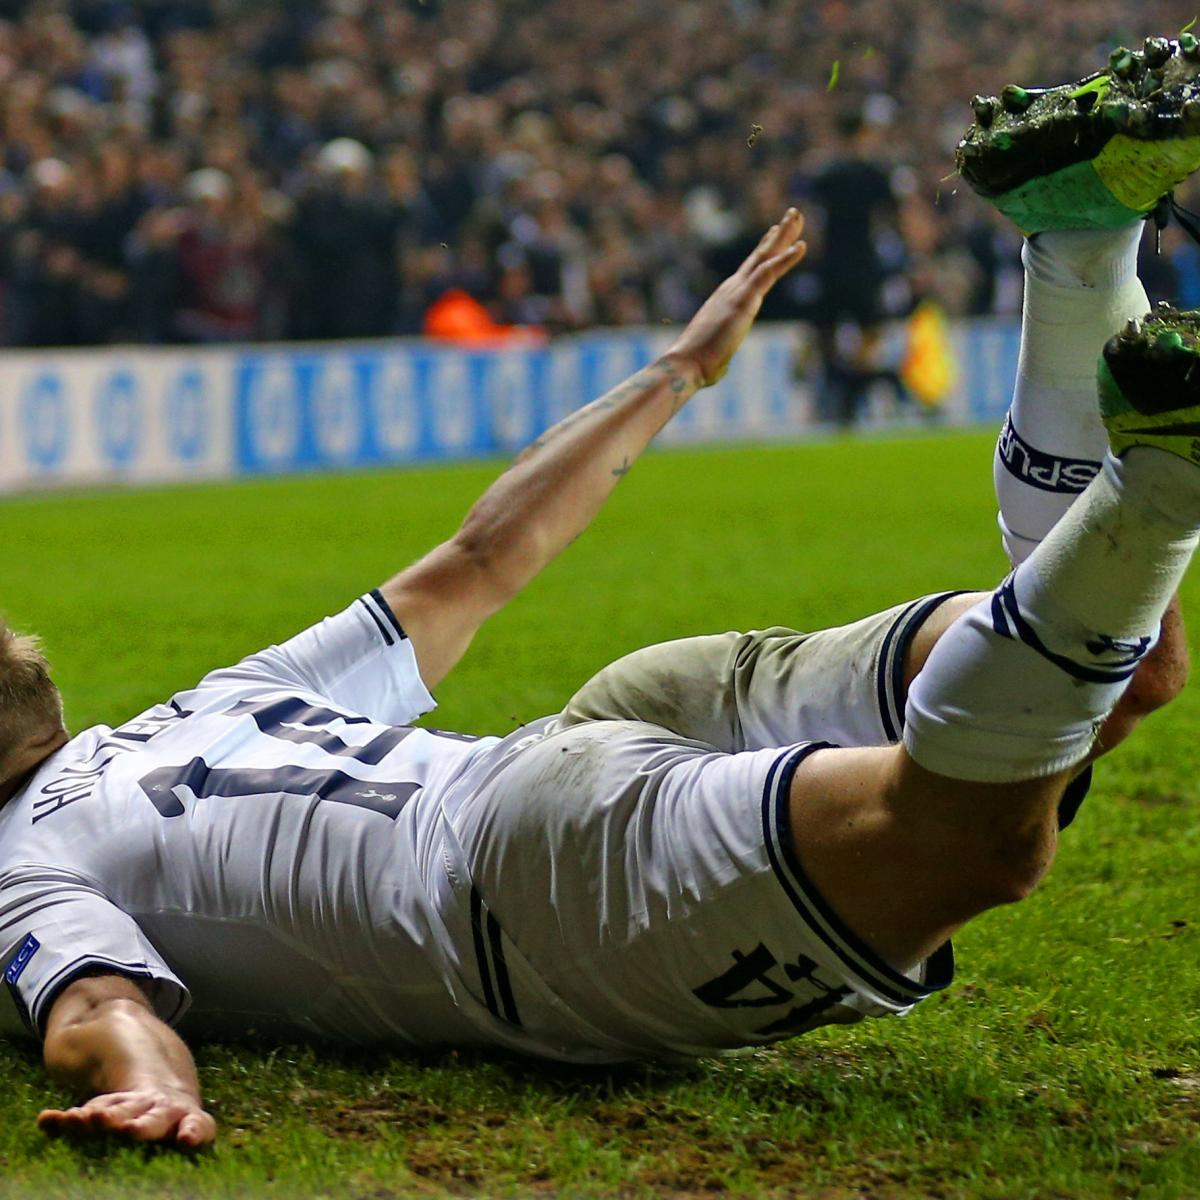 Tottenham Hotspur Vs Man United Tickets: GIF: Lewis Holtby Scores Stunning Goal For Tottenham